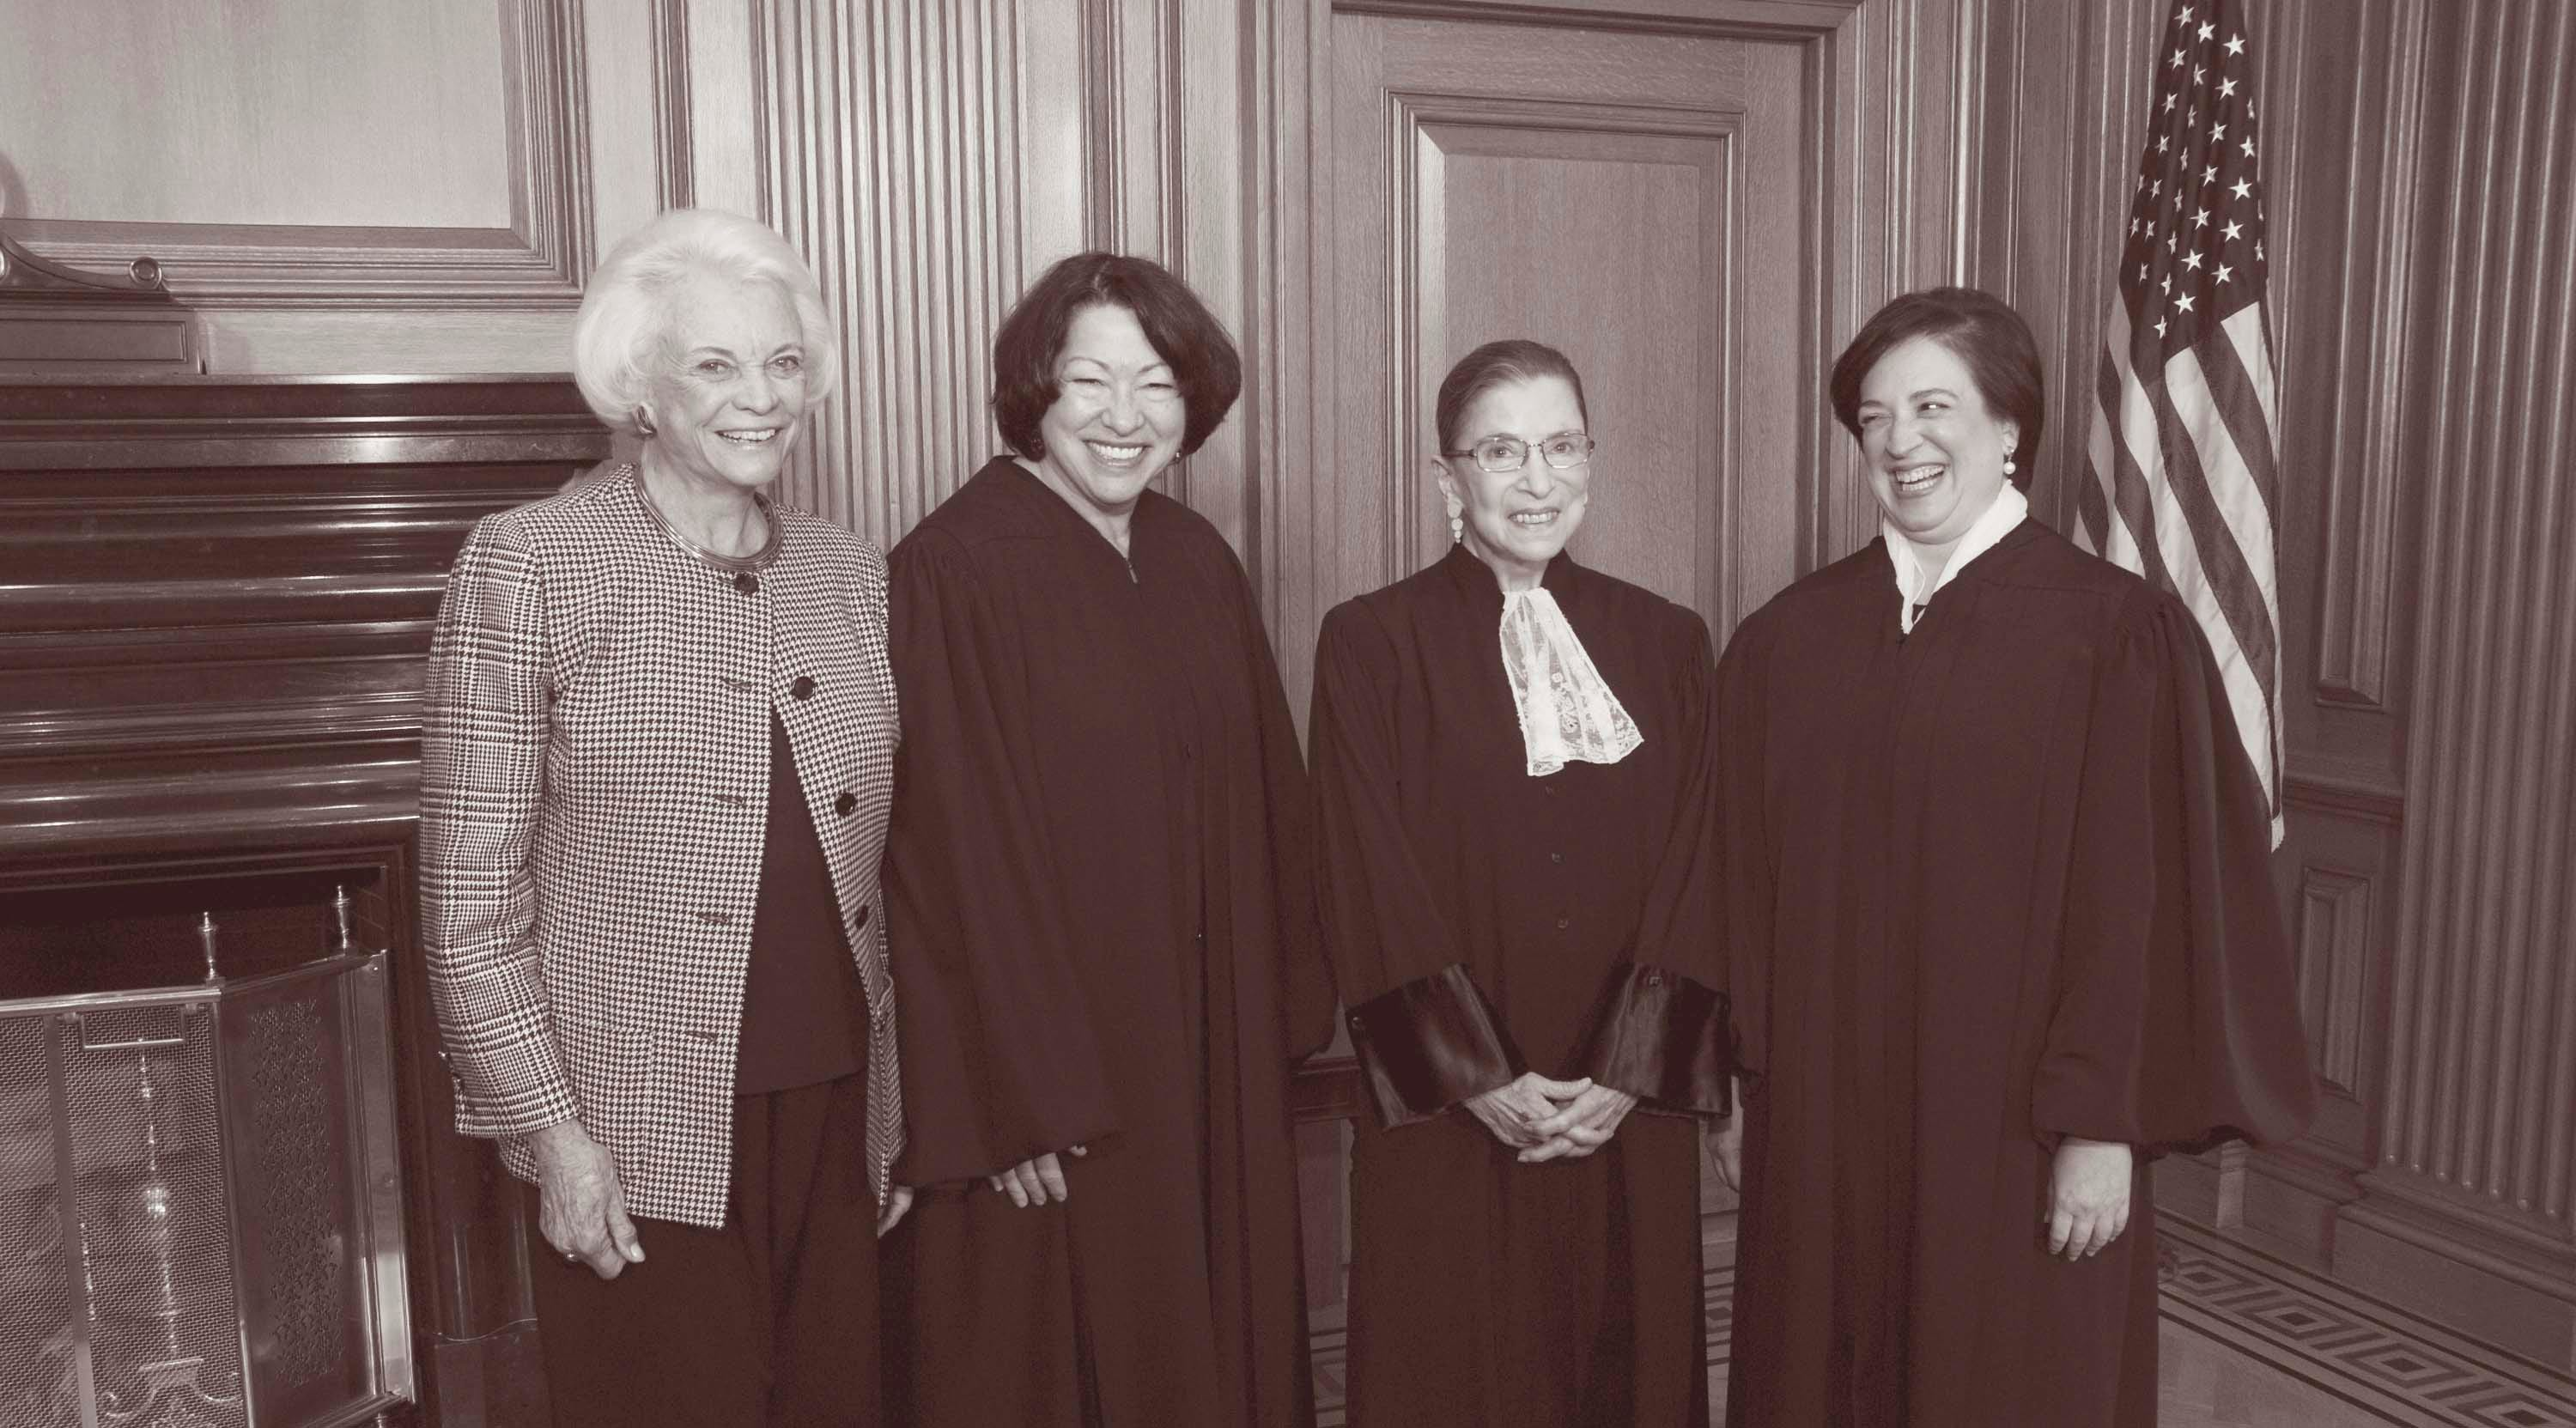 Meet the four women who preceded Amy Coney Barrett on the Supreme Court